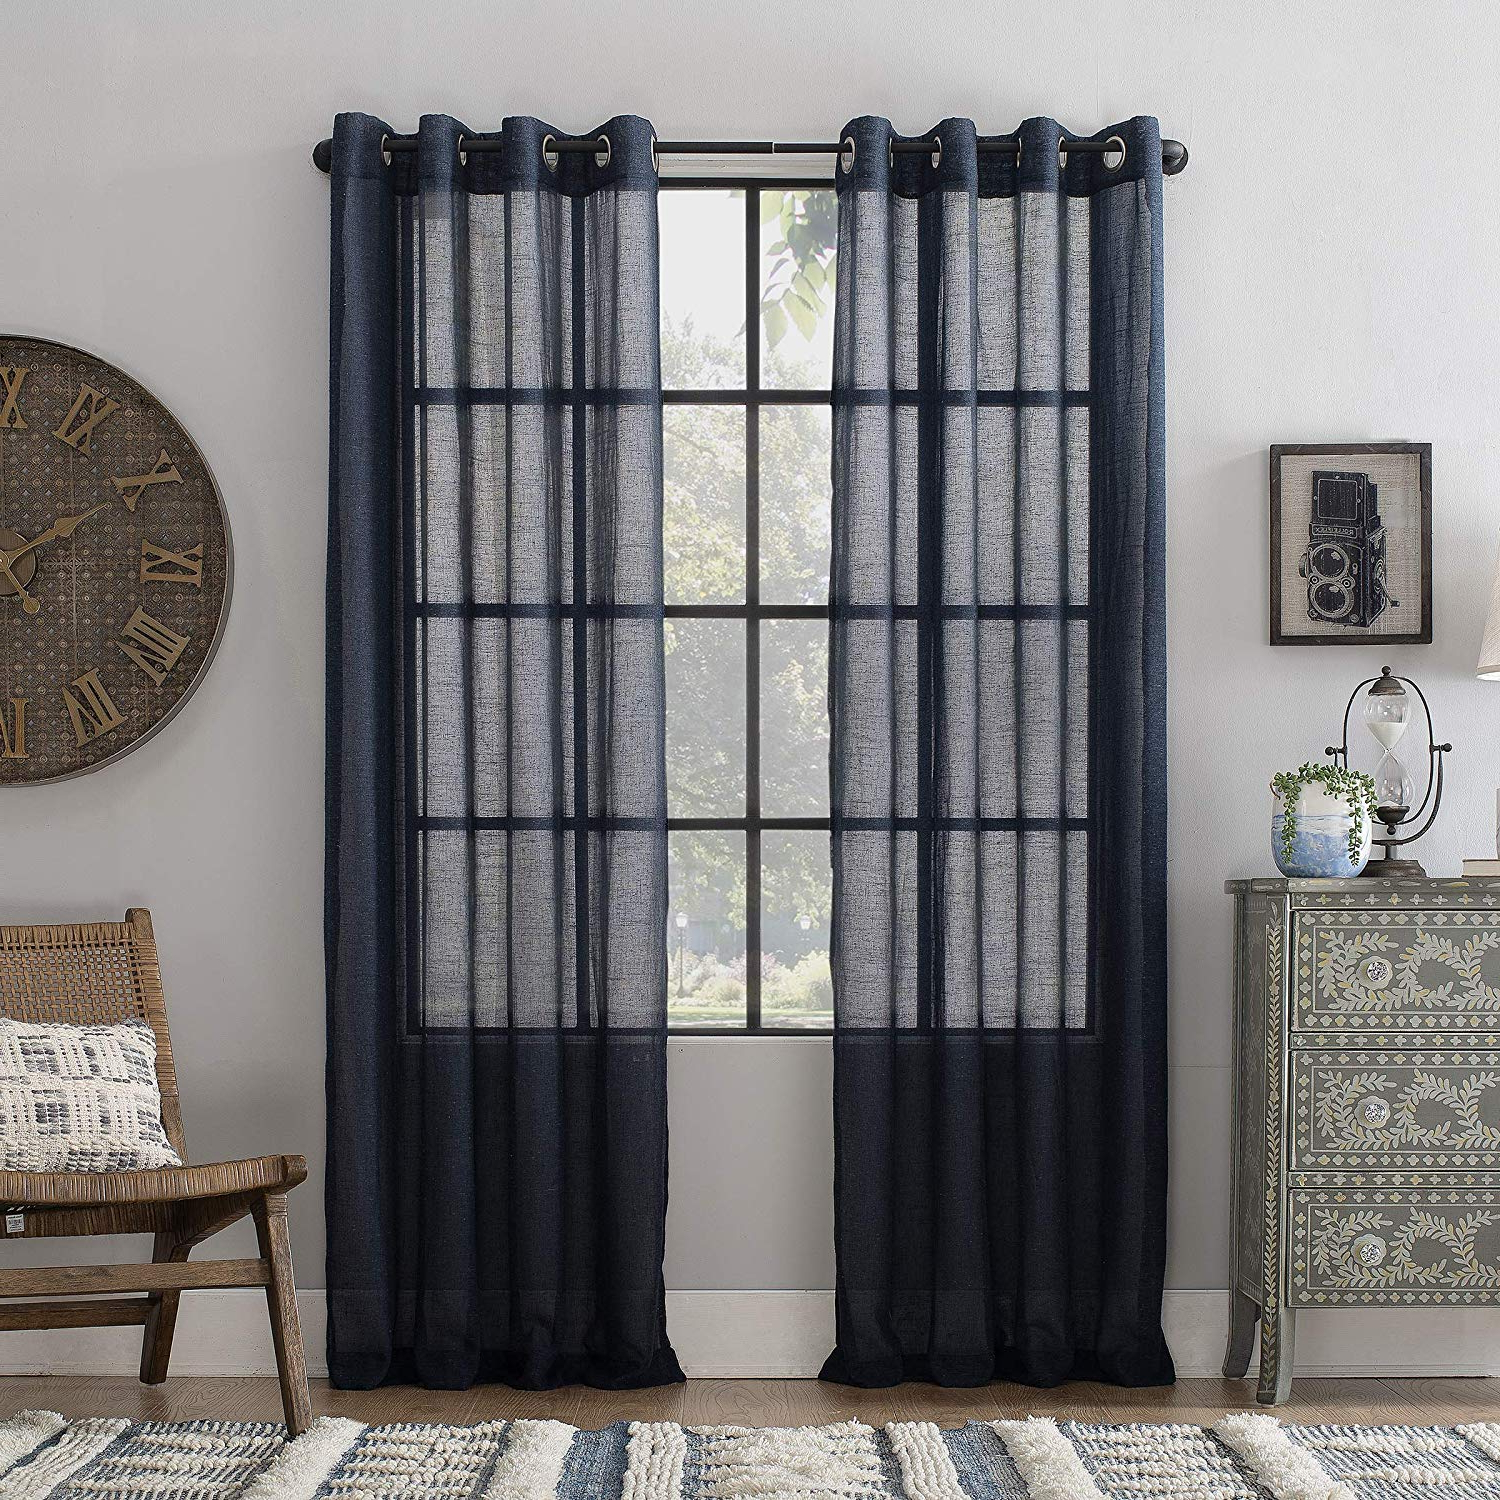 "Archaeo Slub Textured Linen Blend Grommet Top Curtain, 52"" X 84"", Navy Inside 2020 Archaeo Slub Textured Linen Blend Grommet Top Curtains (View 7 of 20)"